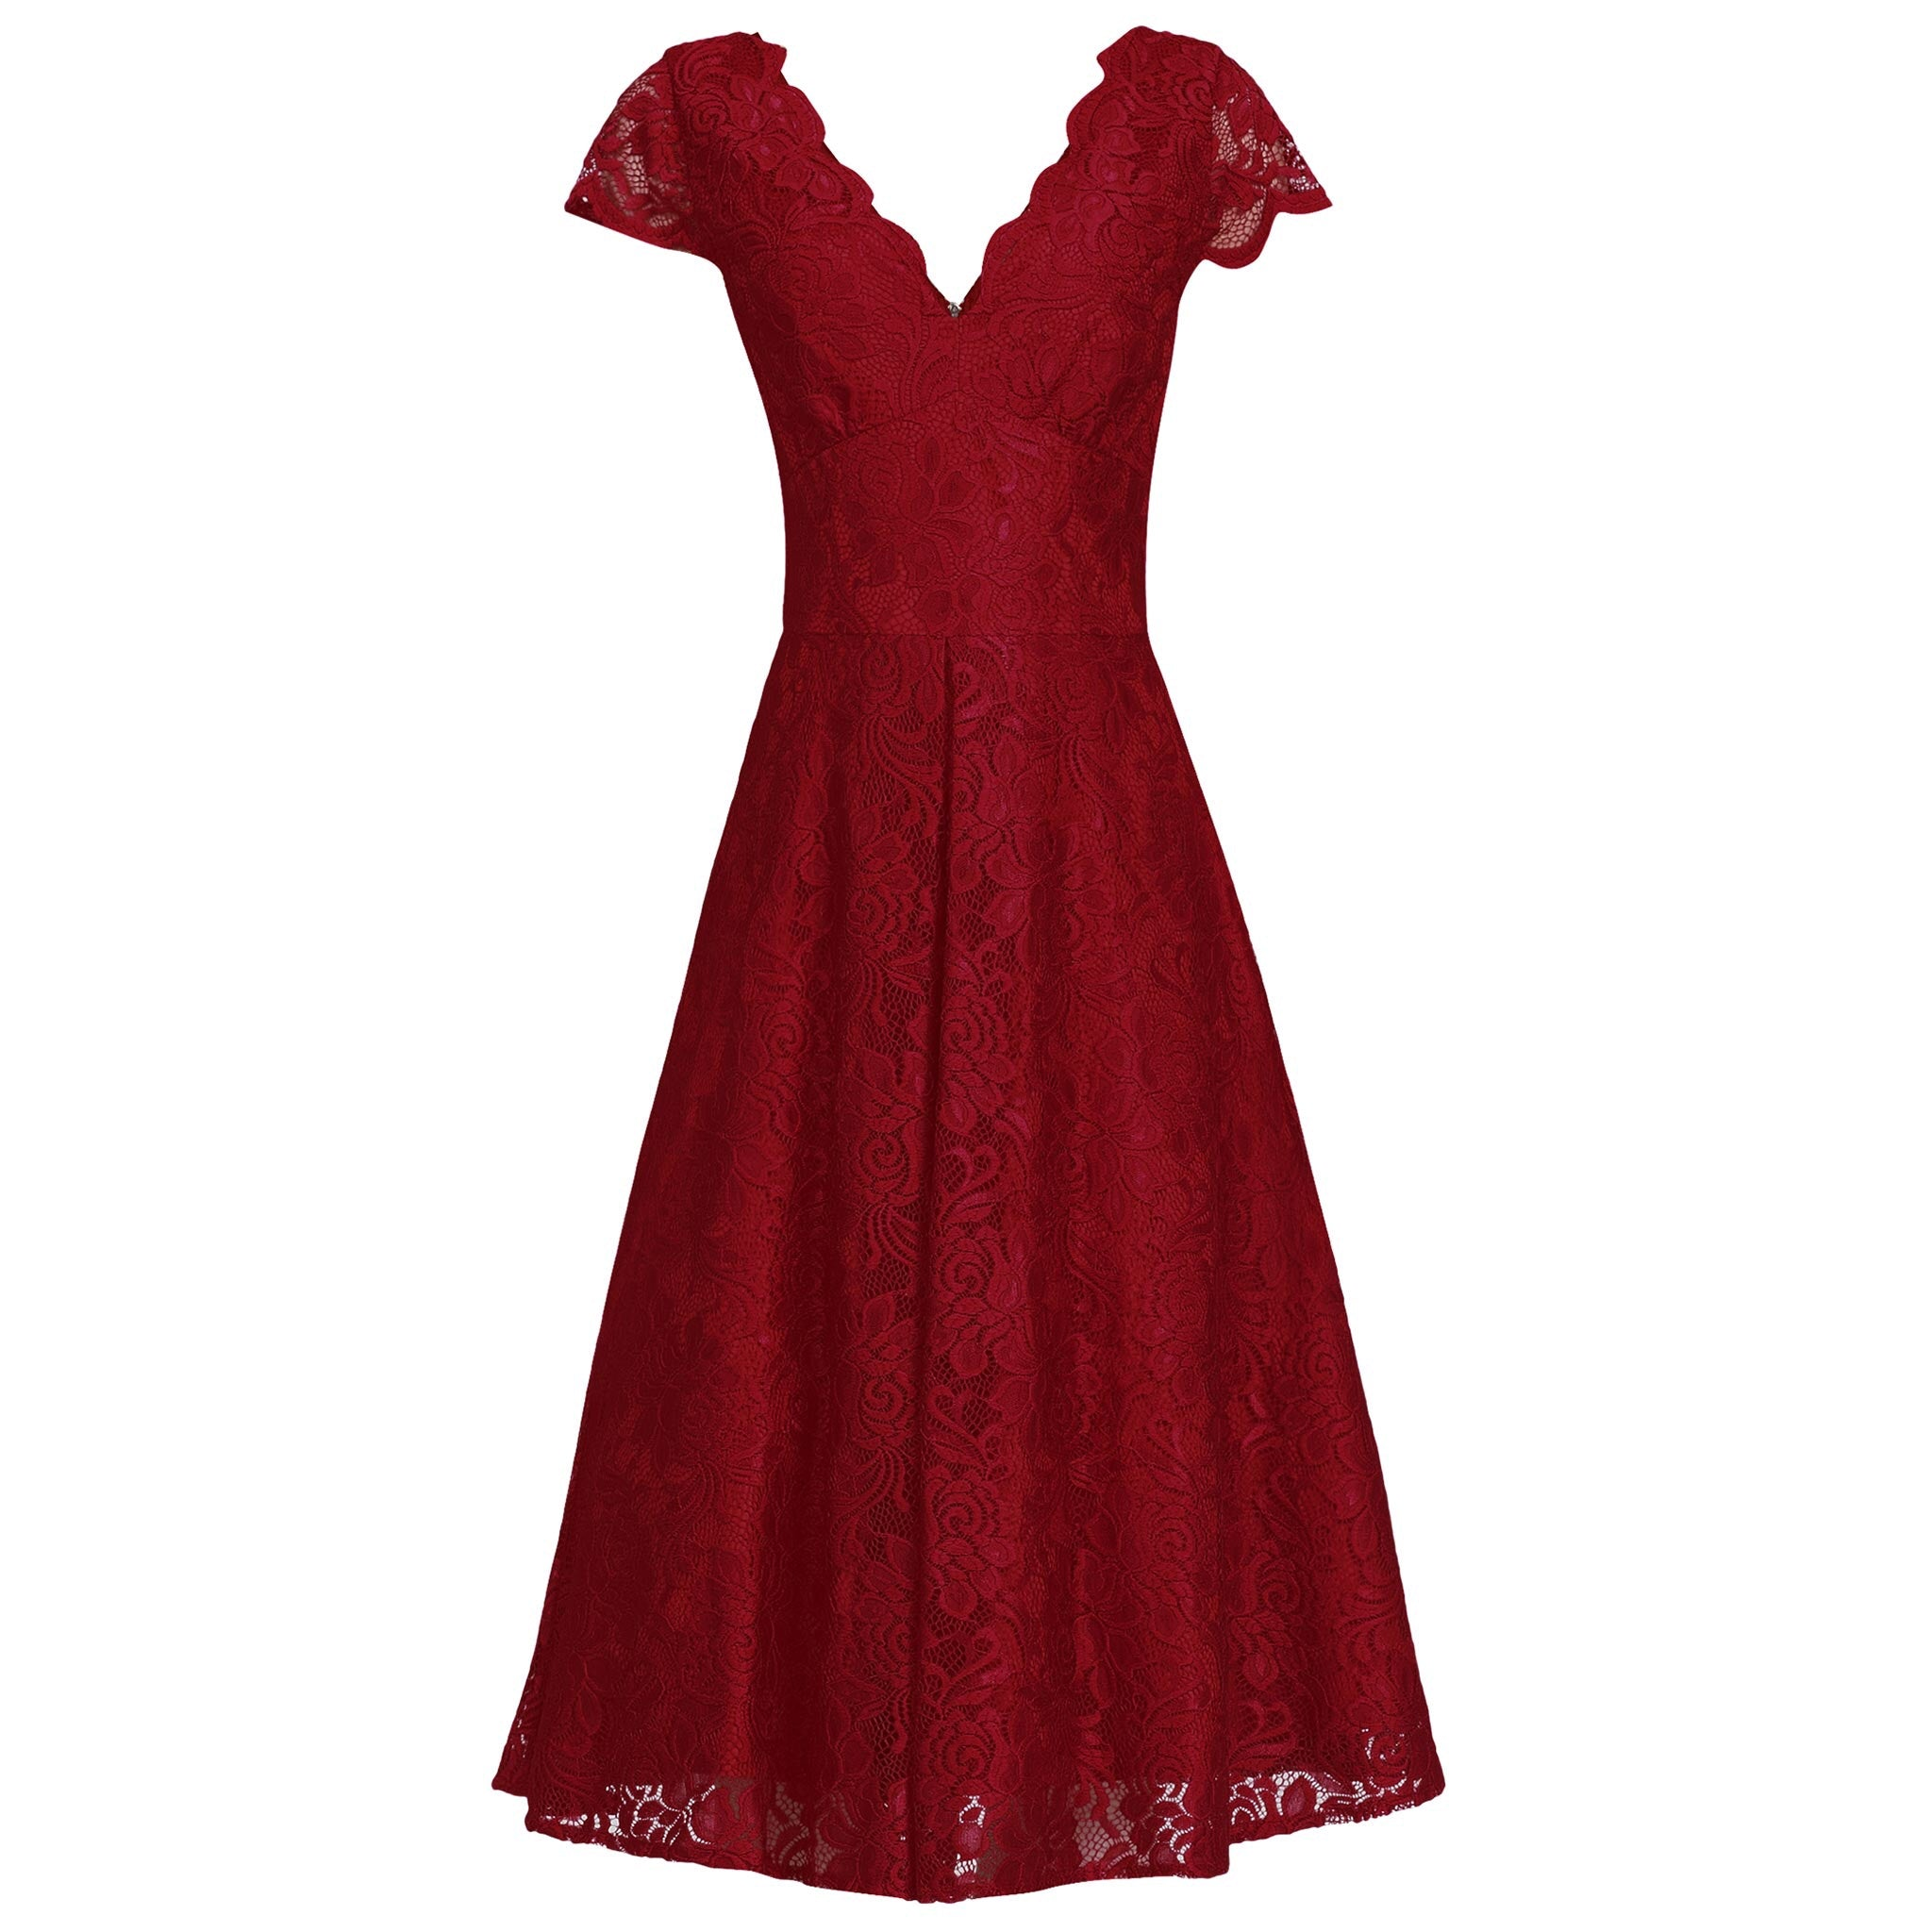 bba598ecae4b Red Cap Sleeve Embroidered Lace Bridesmaid Swing Dress